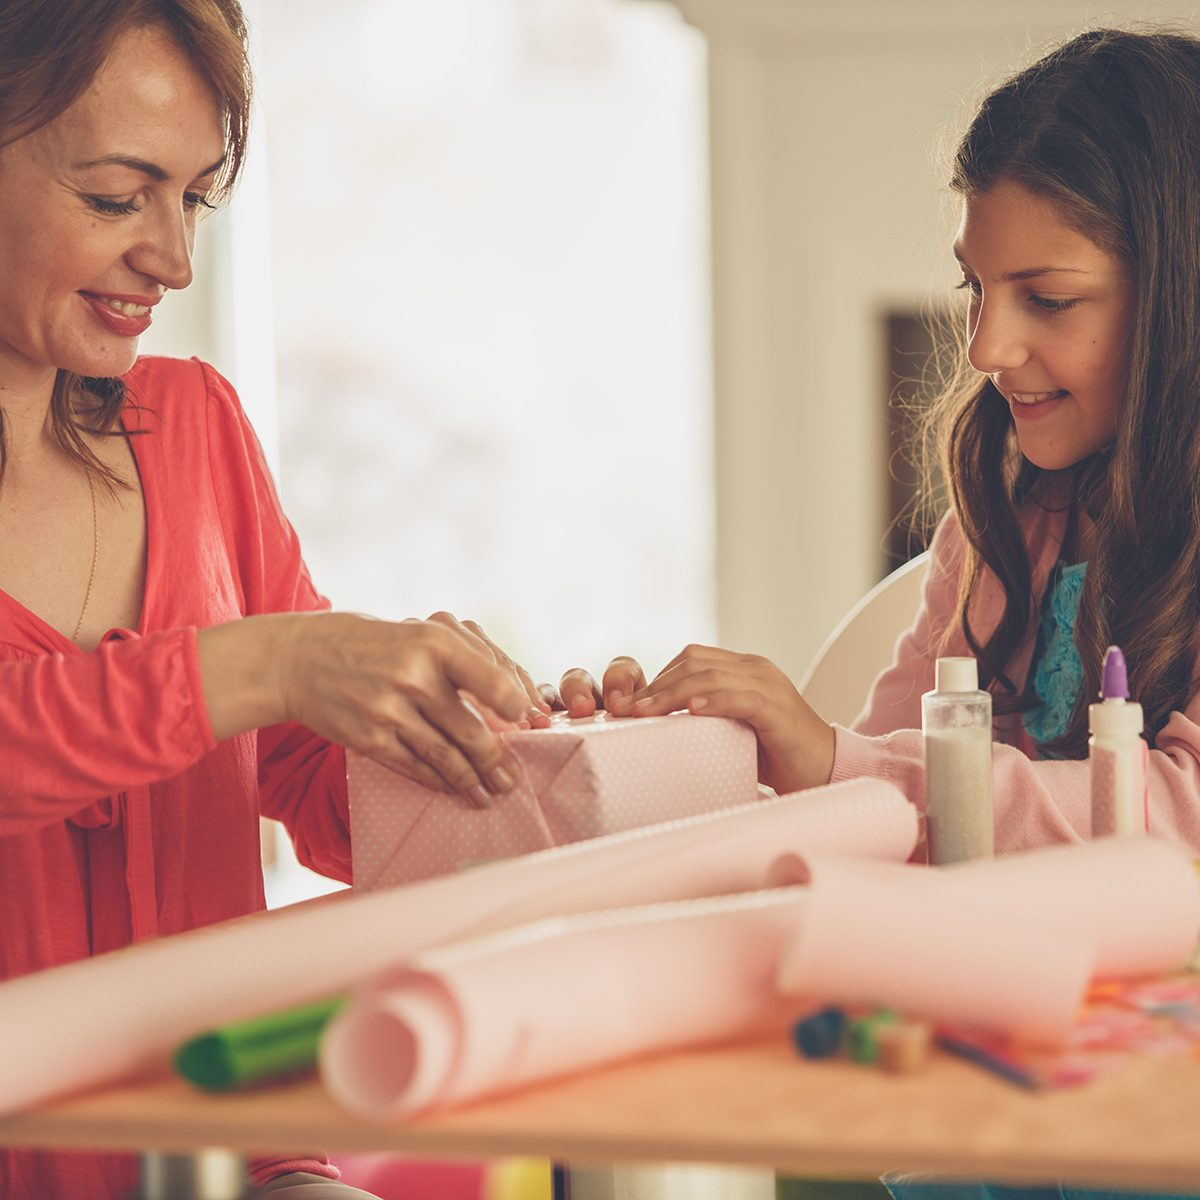 Happy Mother And Daughter Wrapping A Present Together